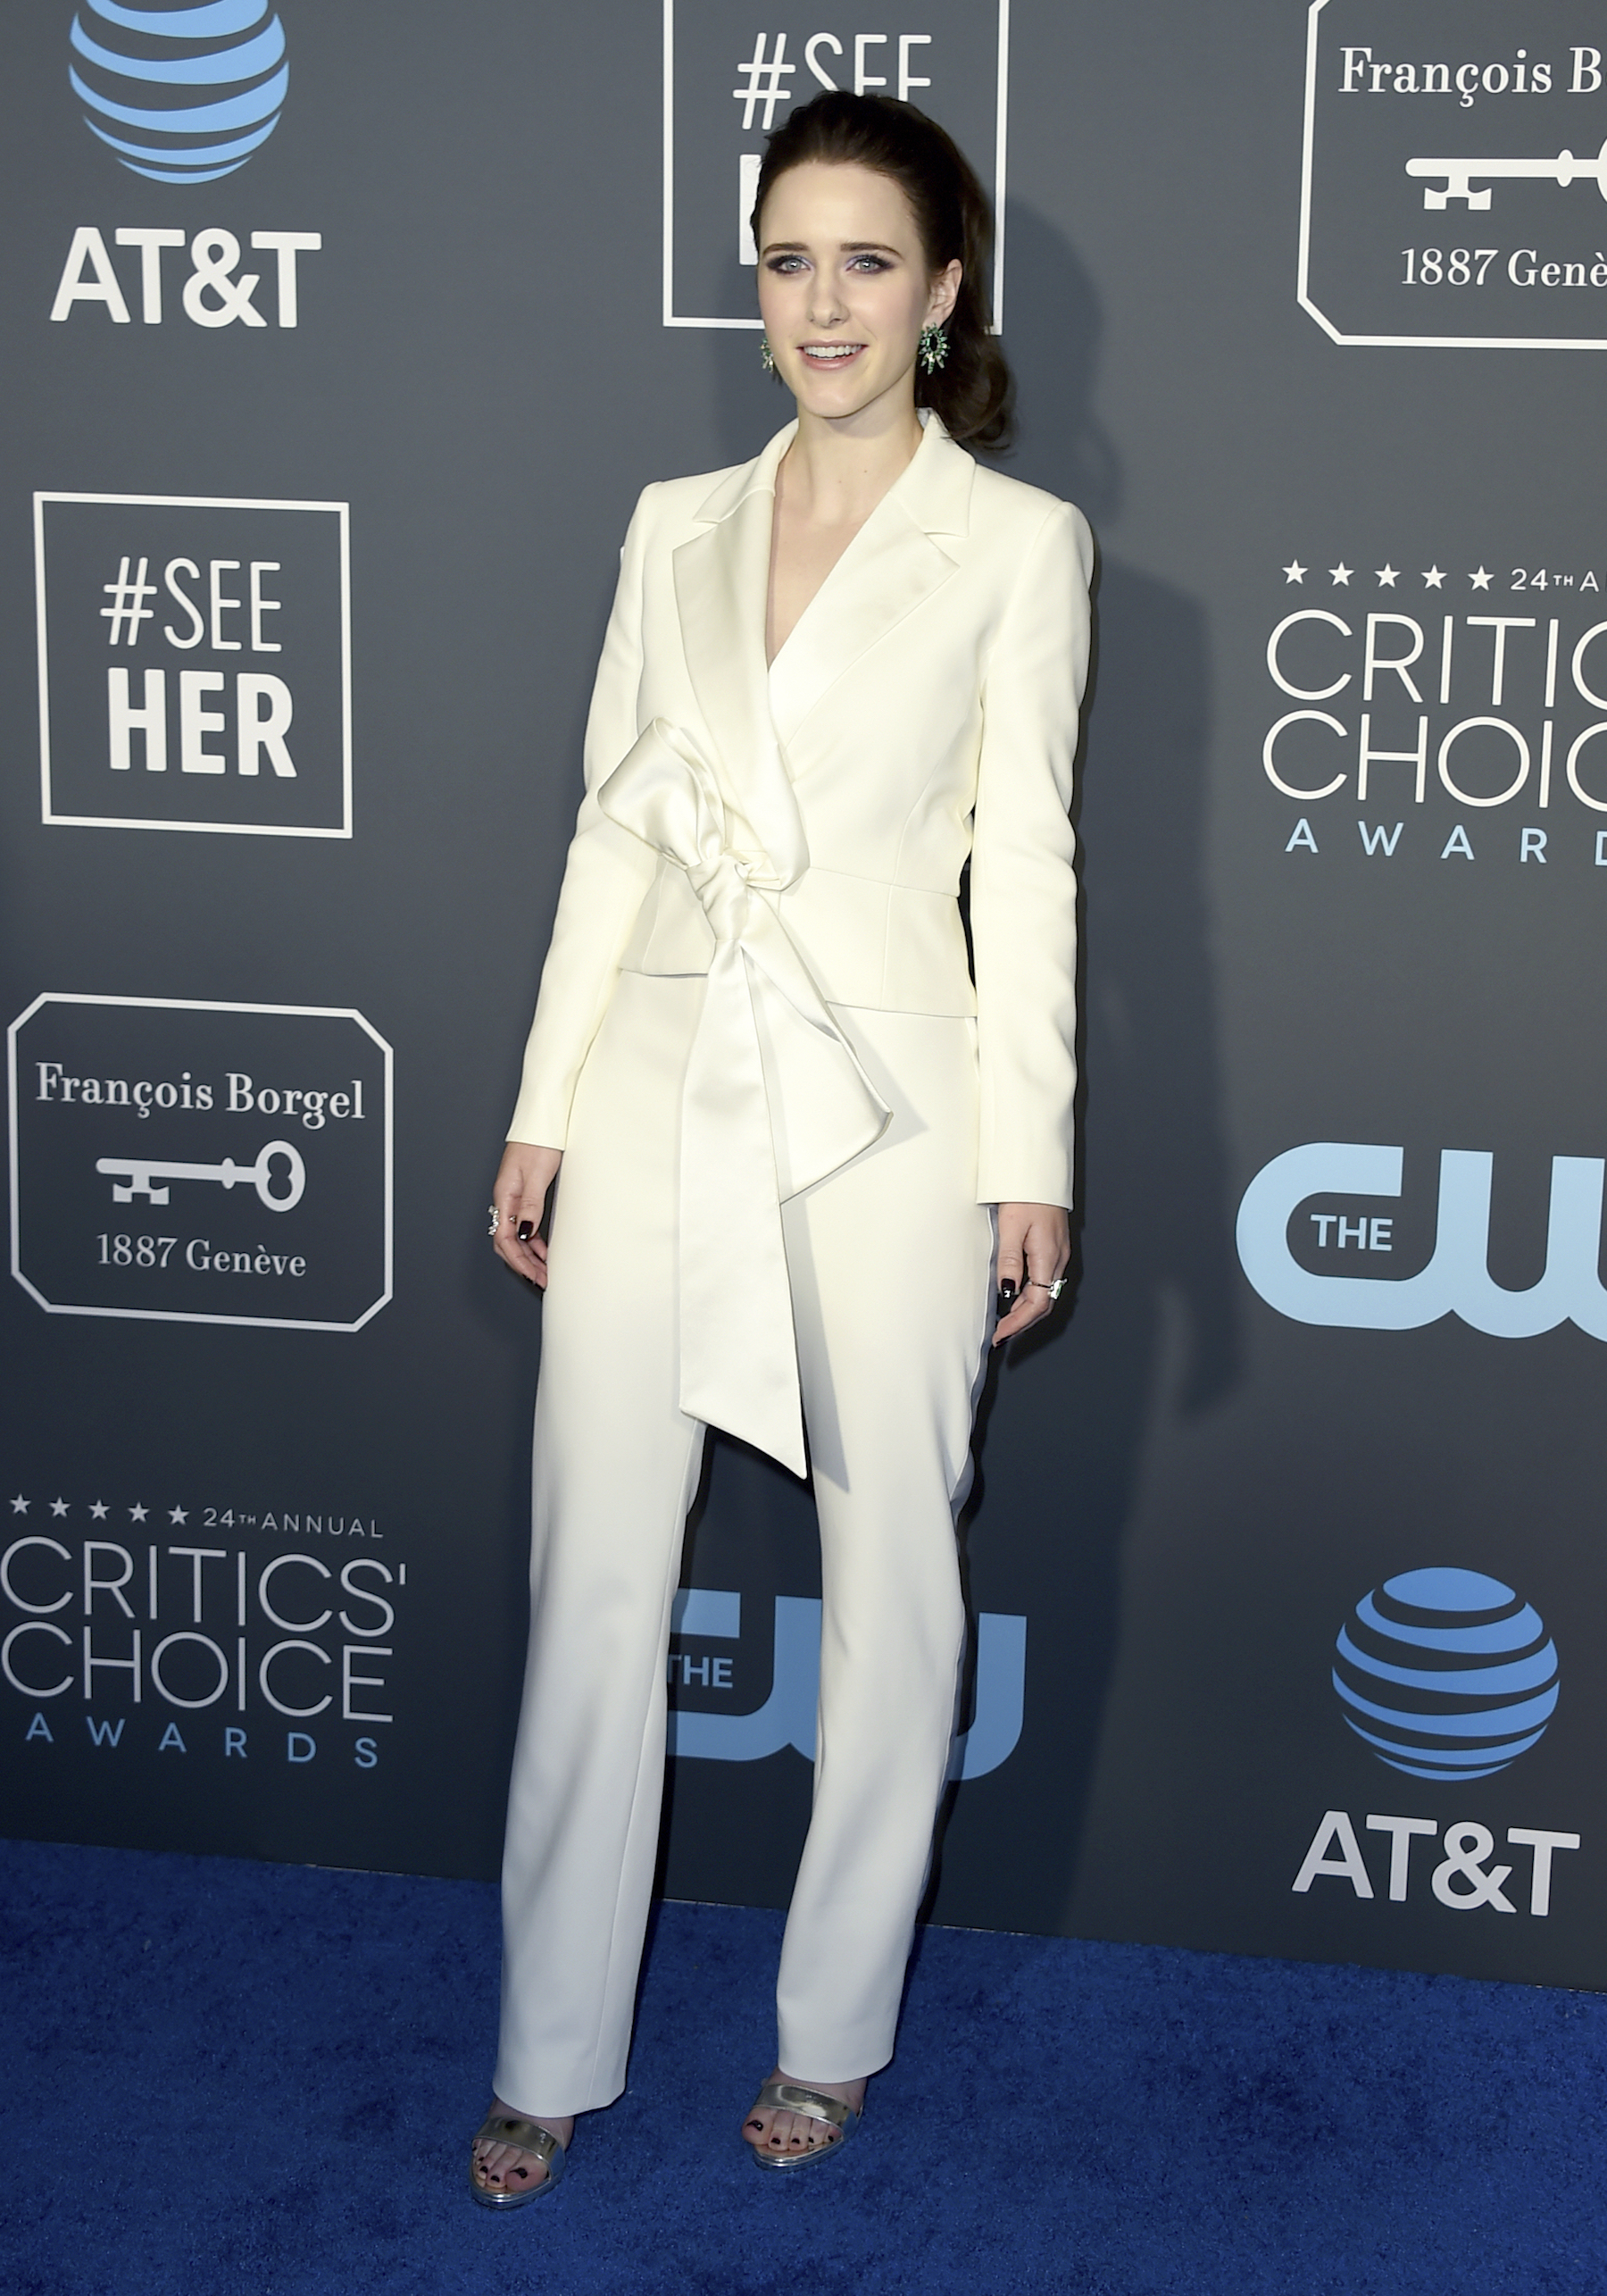 "<div class=""meta image-caption""><div class=""origin-logo origin-image ap""><span>AP</span></div><span class=""caption-text"">Rachel Brosnahan arrives at the 24th annual Critics' Choice Awards on Sunday, Jan. 13, 2019, at the Barker Hangar in Santa Monica, Calif. (Jordan Strauss/Invision/AP)</span></div>"